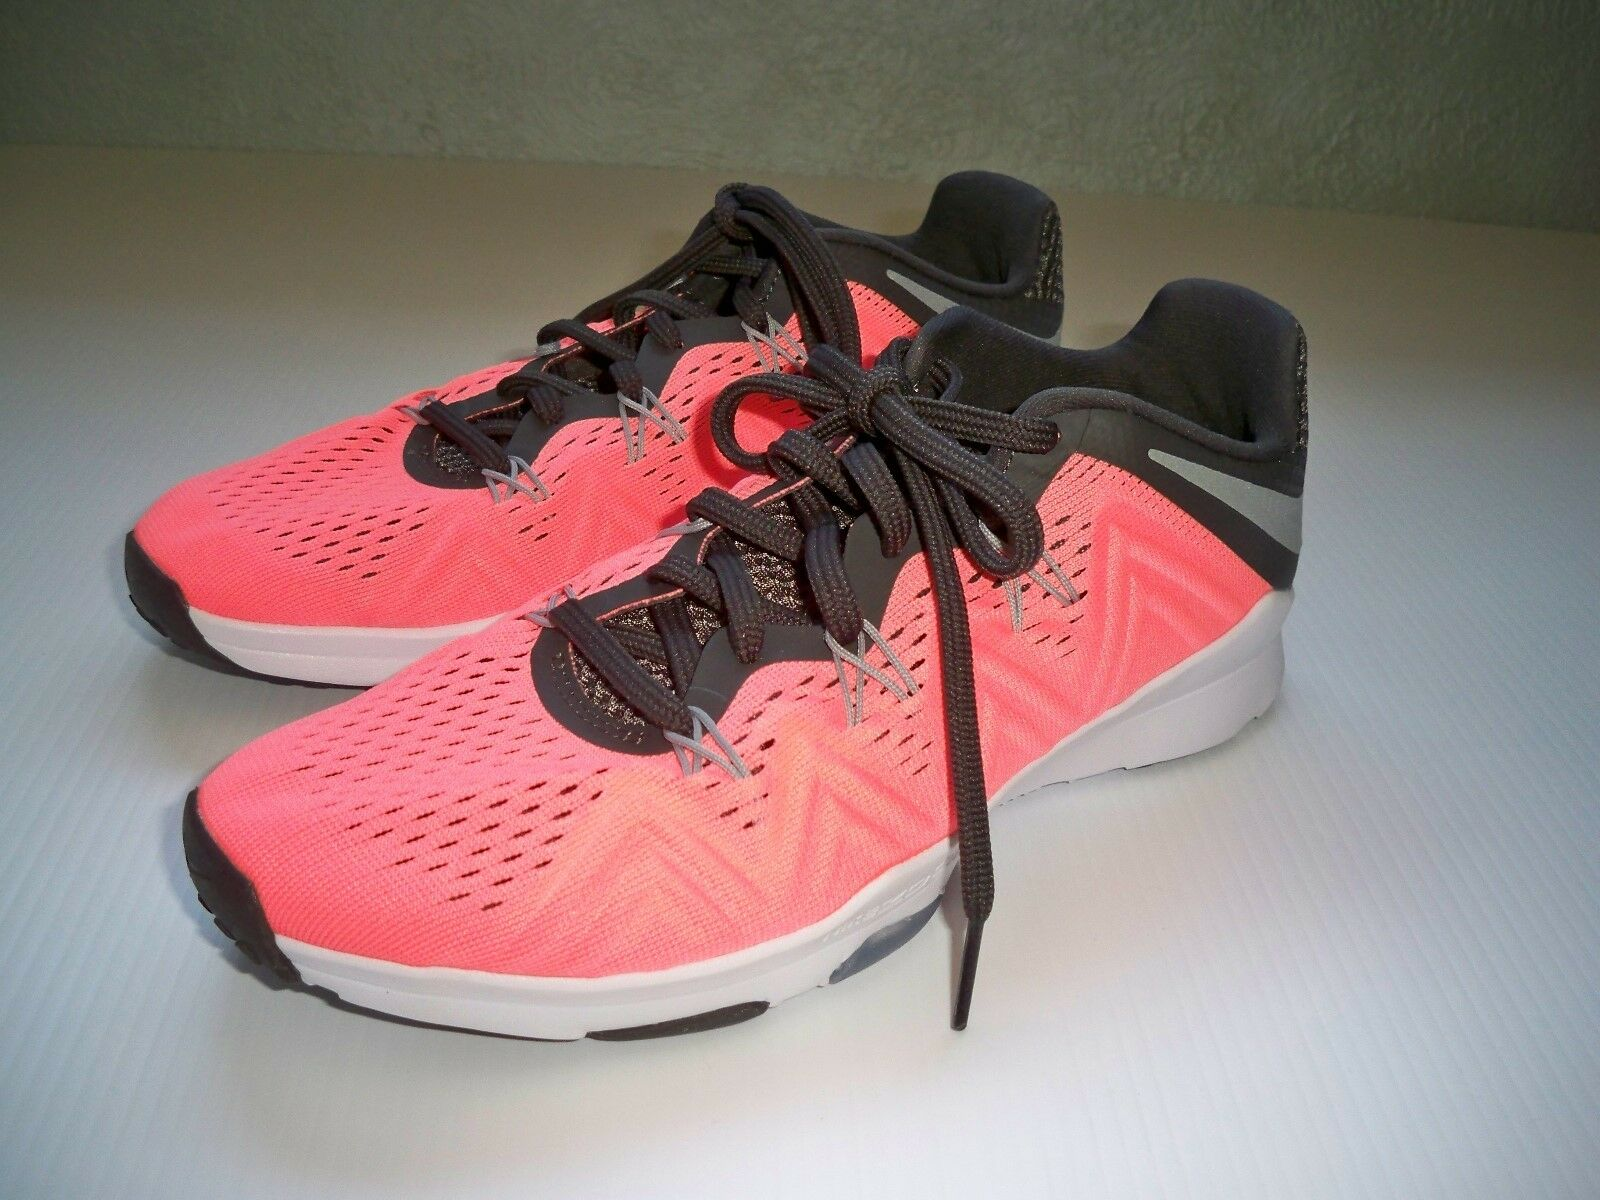 NEW Nike Zoom Condition TR Training Shoes WOMENS SZ 8 Lava Pink/Grey 852472-600